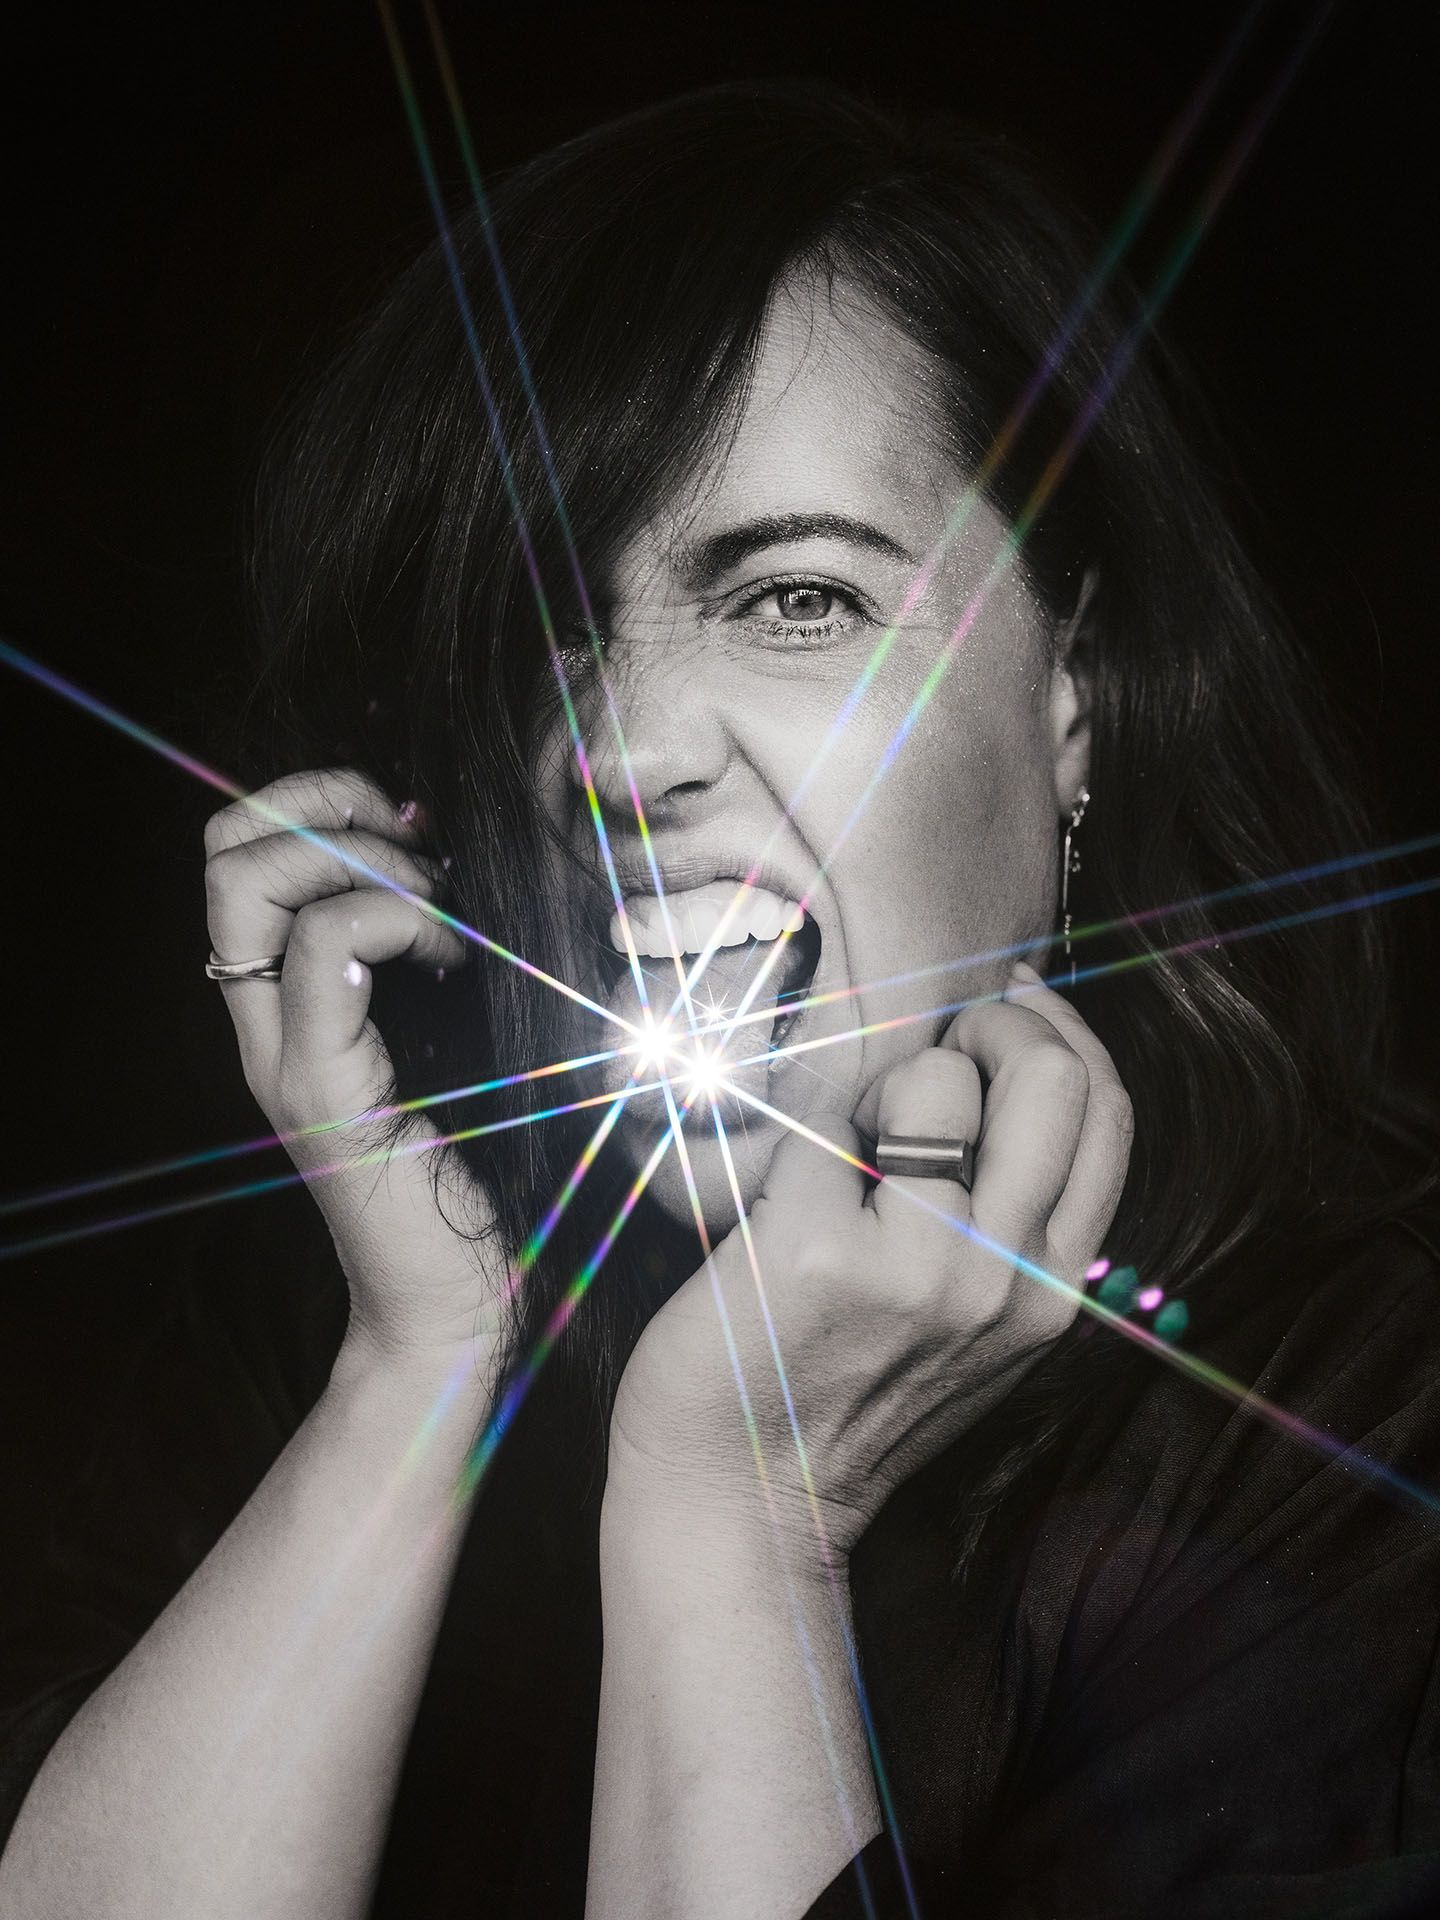 portrait of Ariane Moffatt in black and white sticking tongue out bling on tongue on black background by Jocelyn Michel for Voir